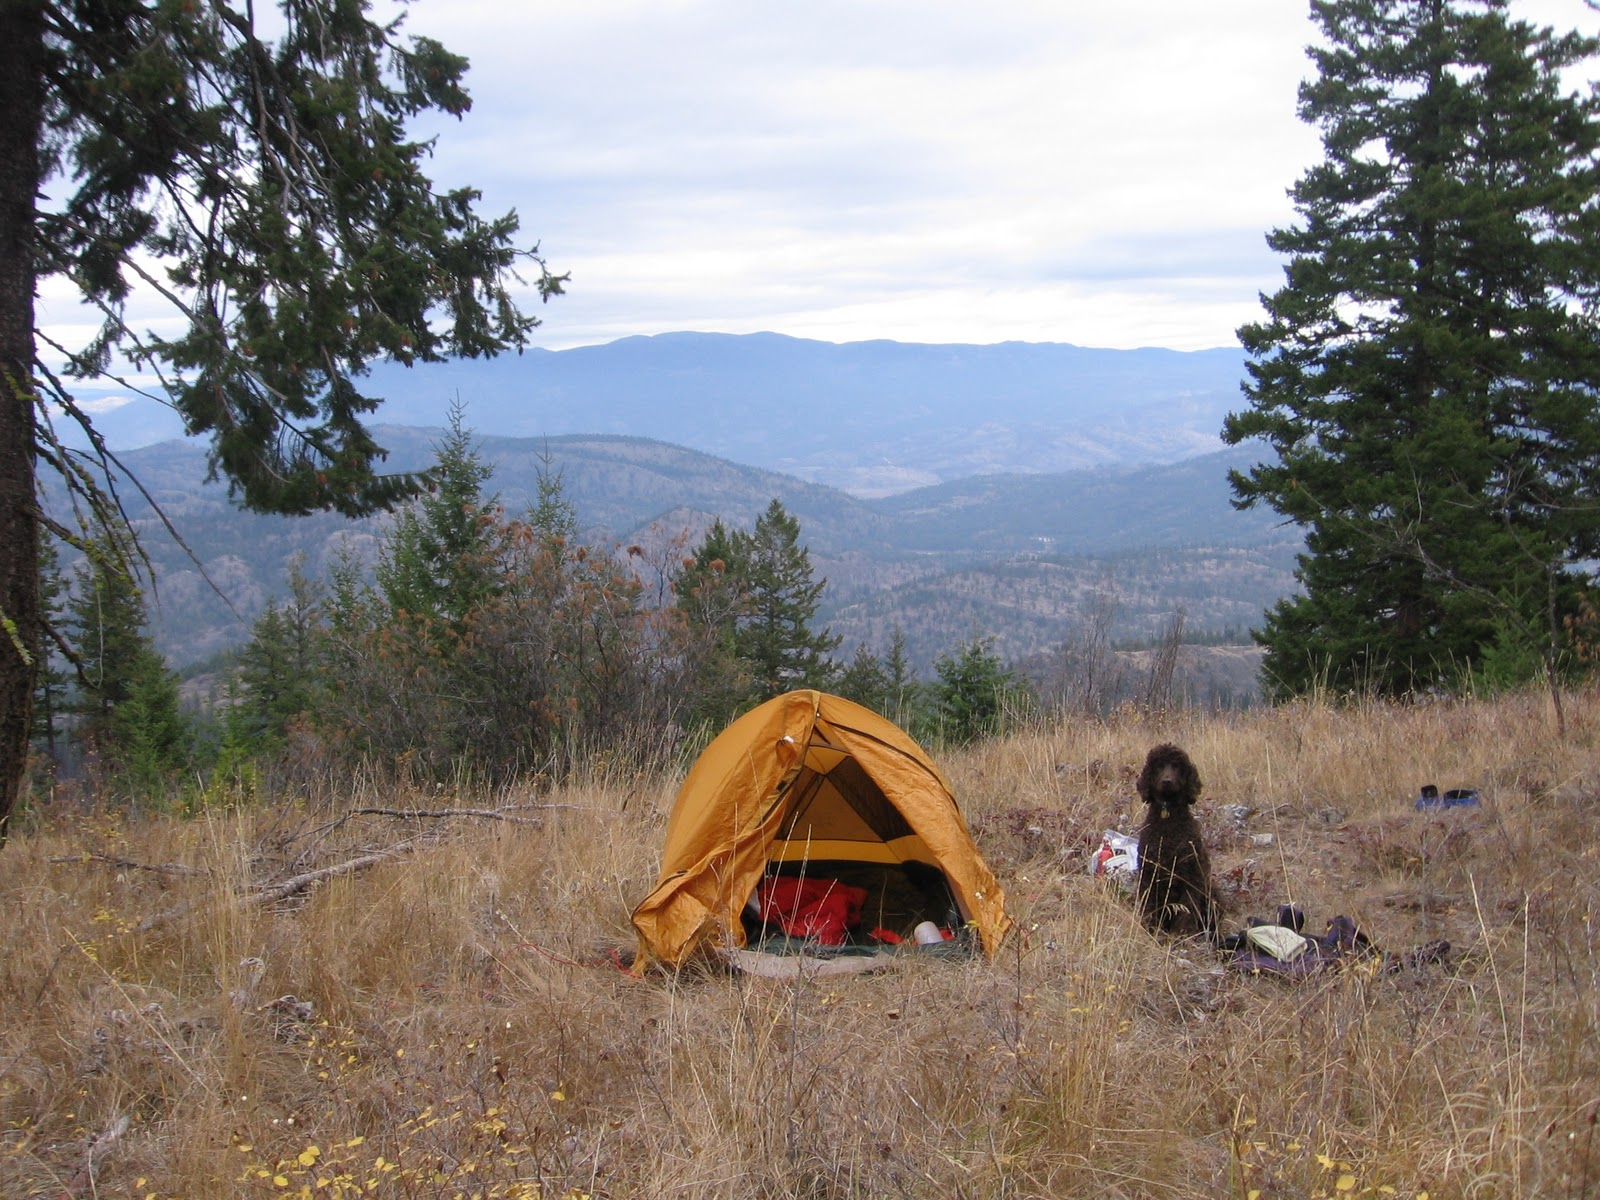 Texsport Saguaro Bivy Shelter Tent & R-Dub Outdoors: Top 10 Things for Backpacking